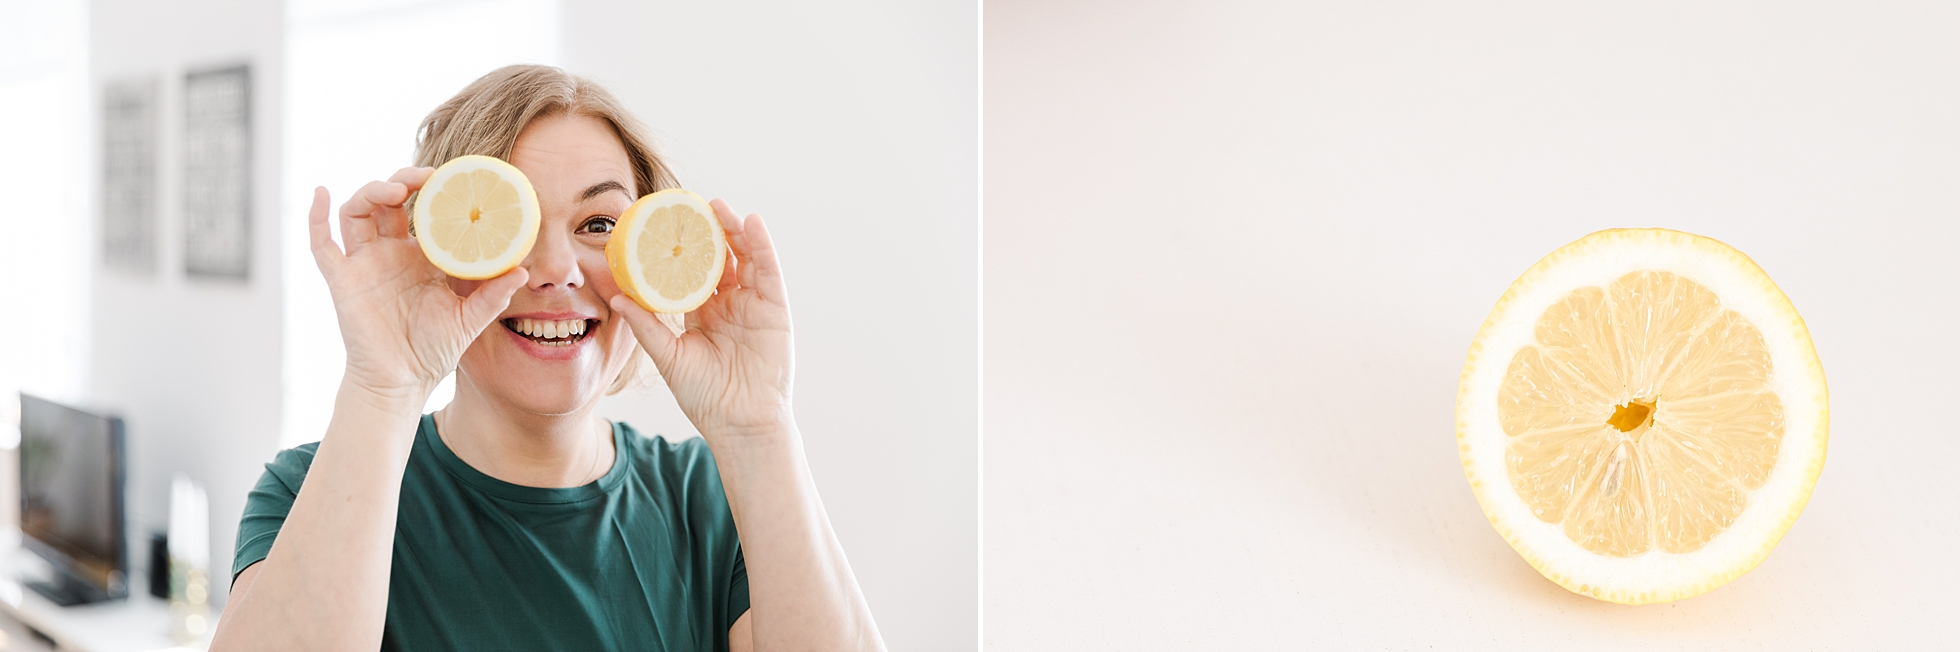 A woman holding up a lemon and smiling